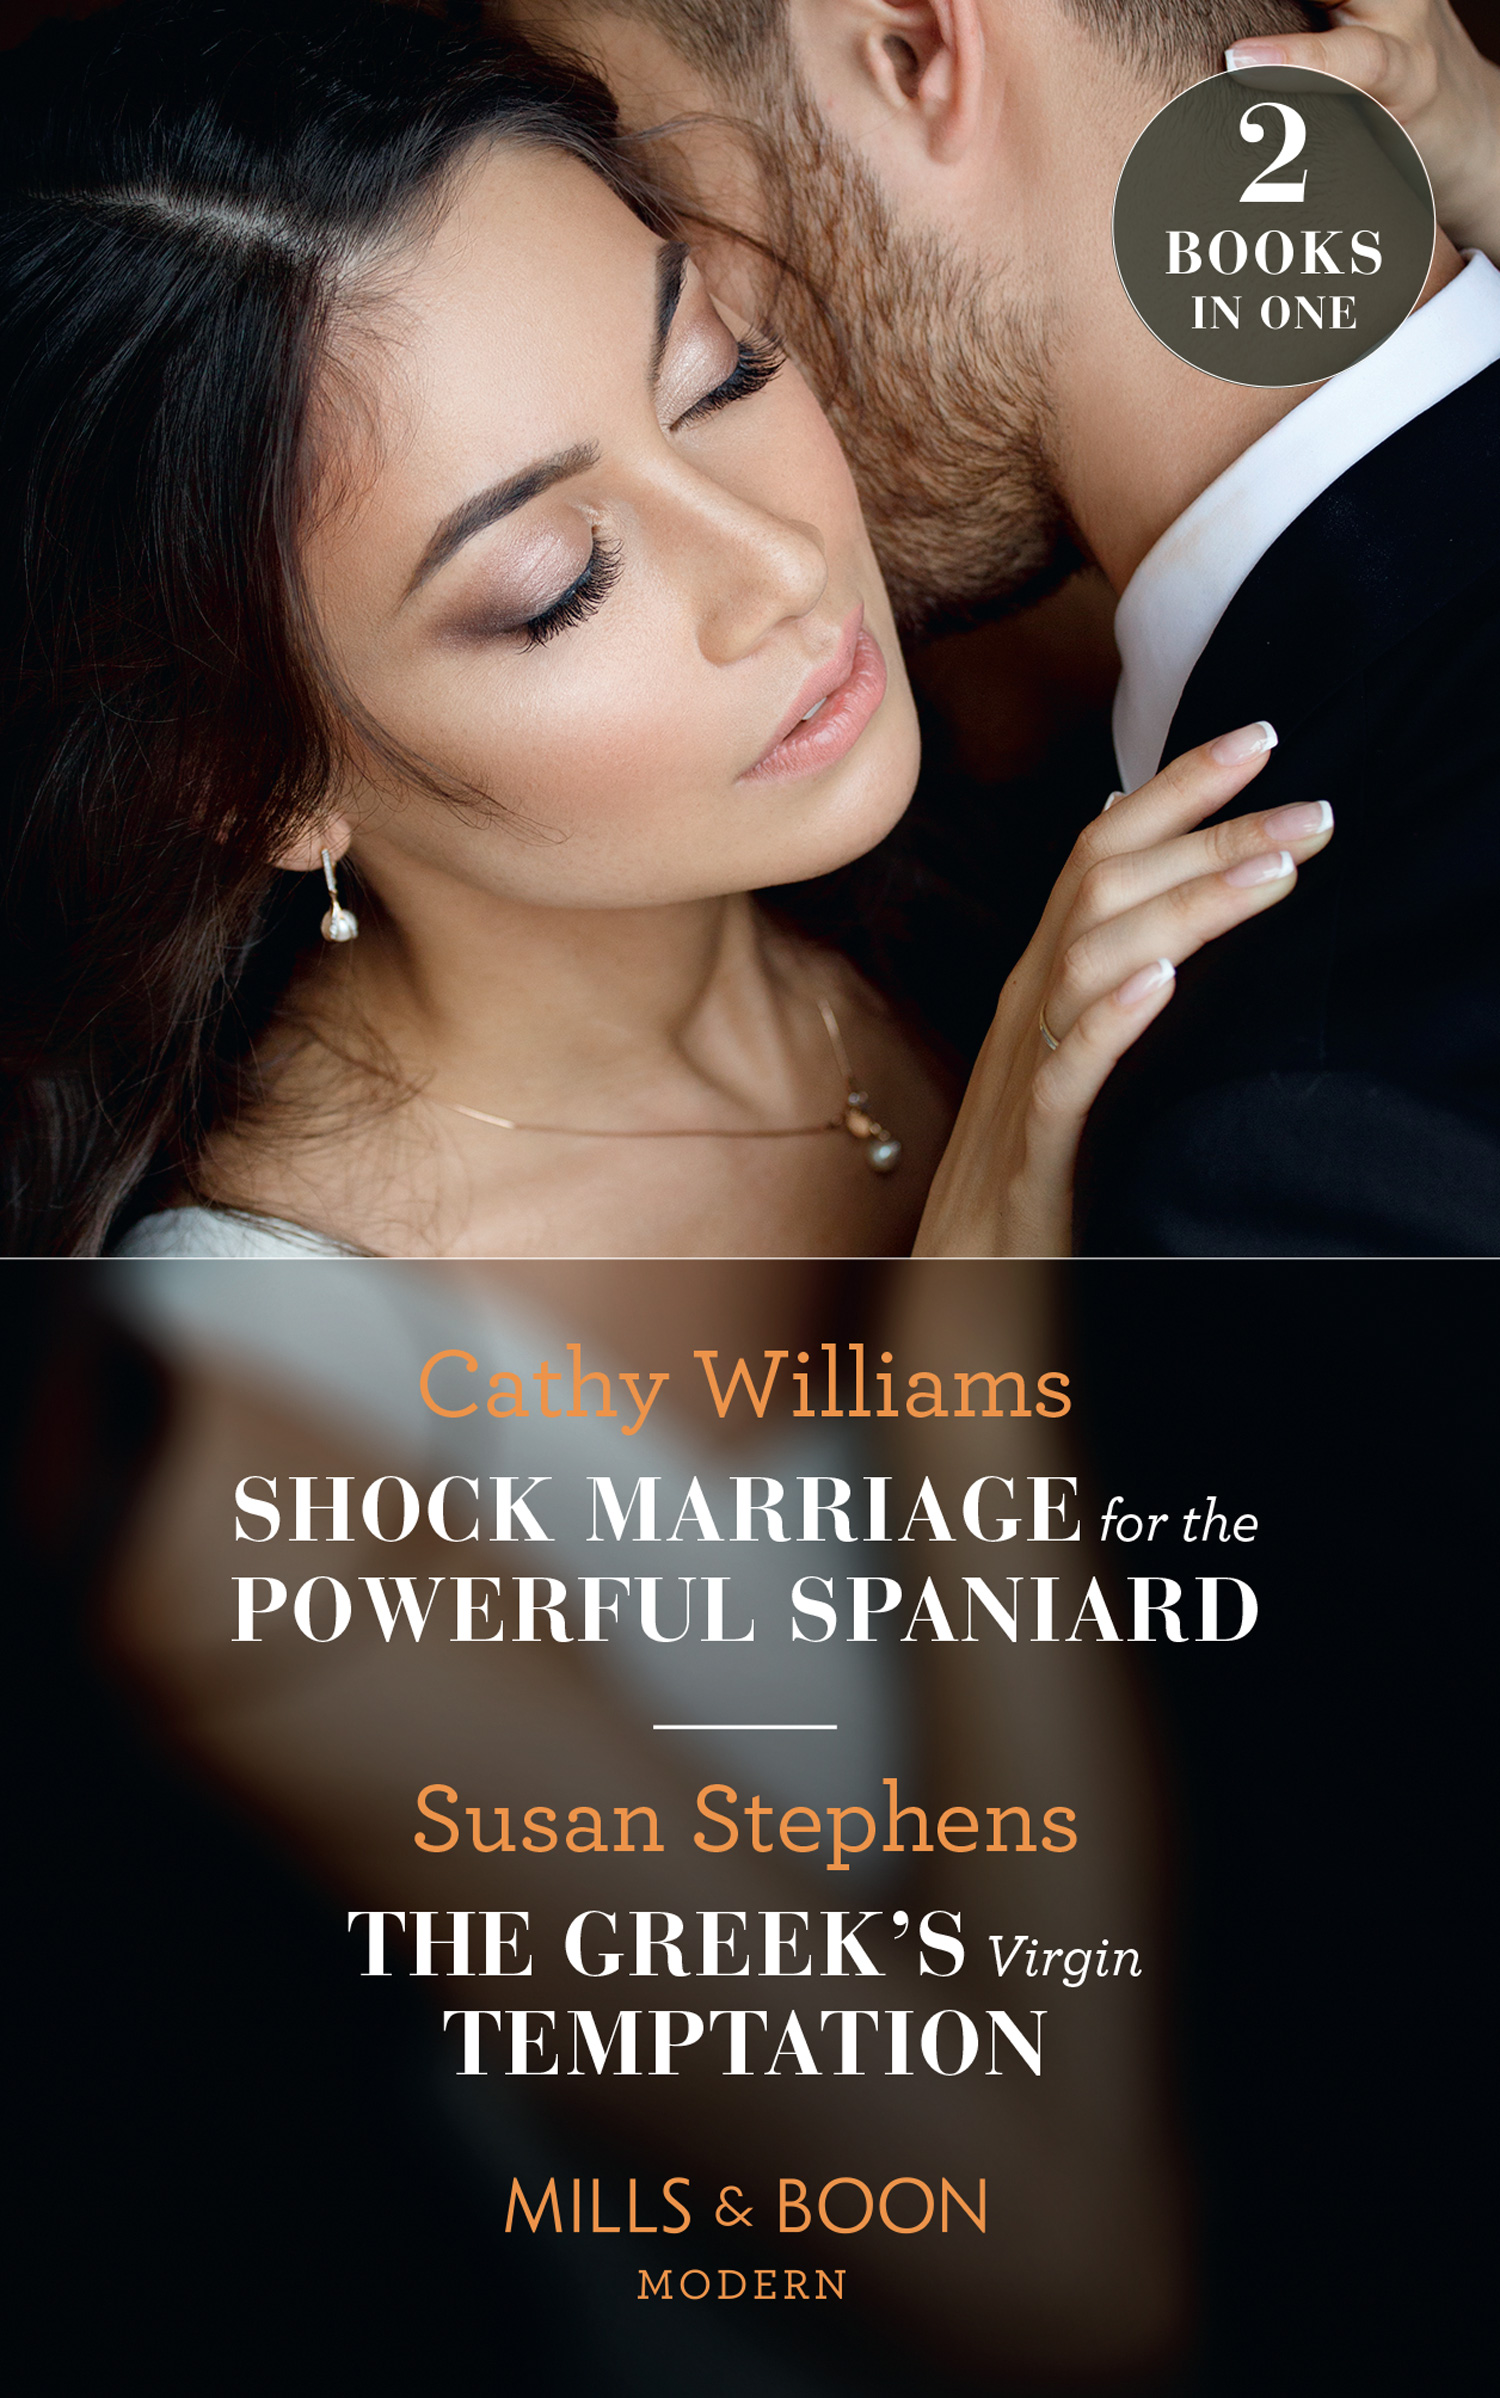 Shock Marriage For The Powerful Spaniard / The Greek's Virgin Temptation